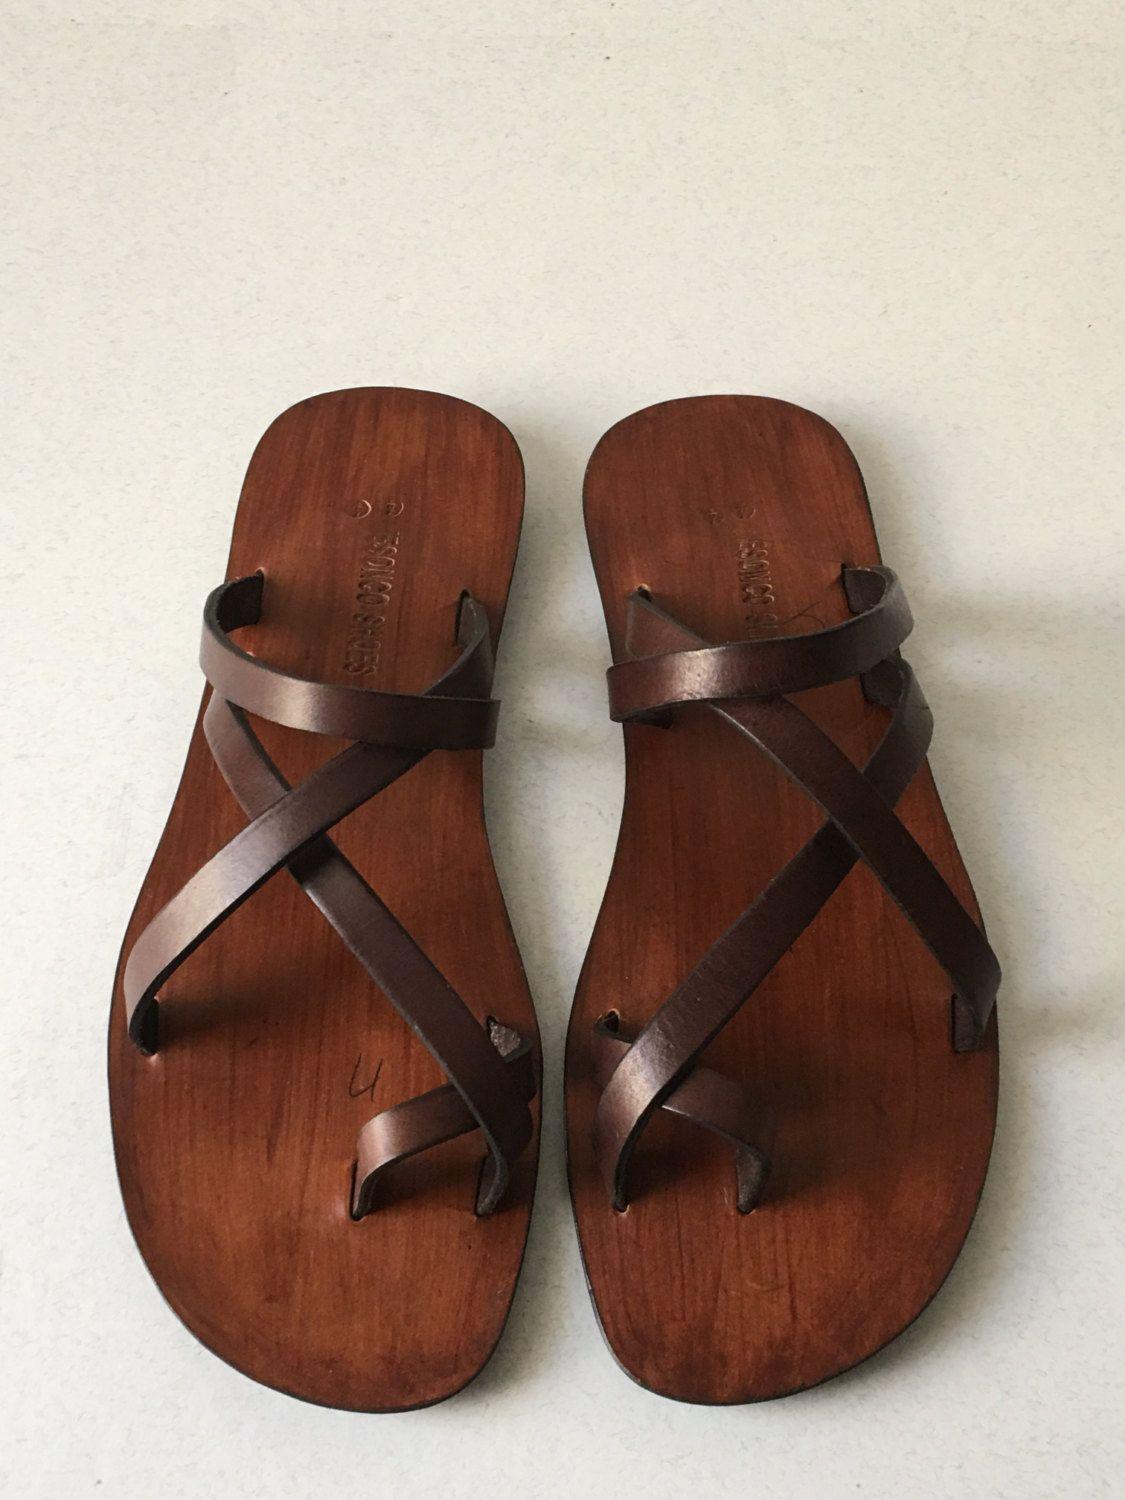 457e02105f2a Handmade Leather Sandals for Men by KellyGeneSandals on Etsy